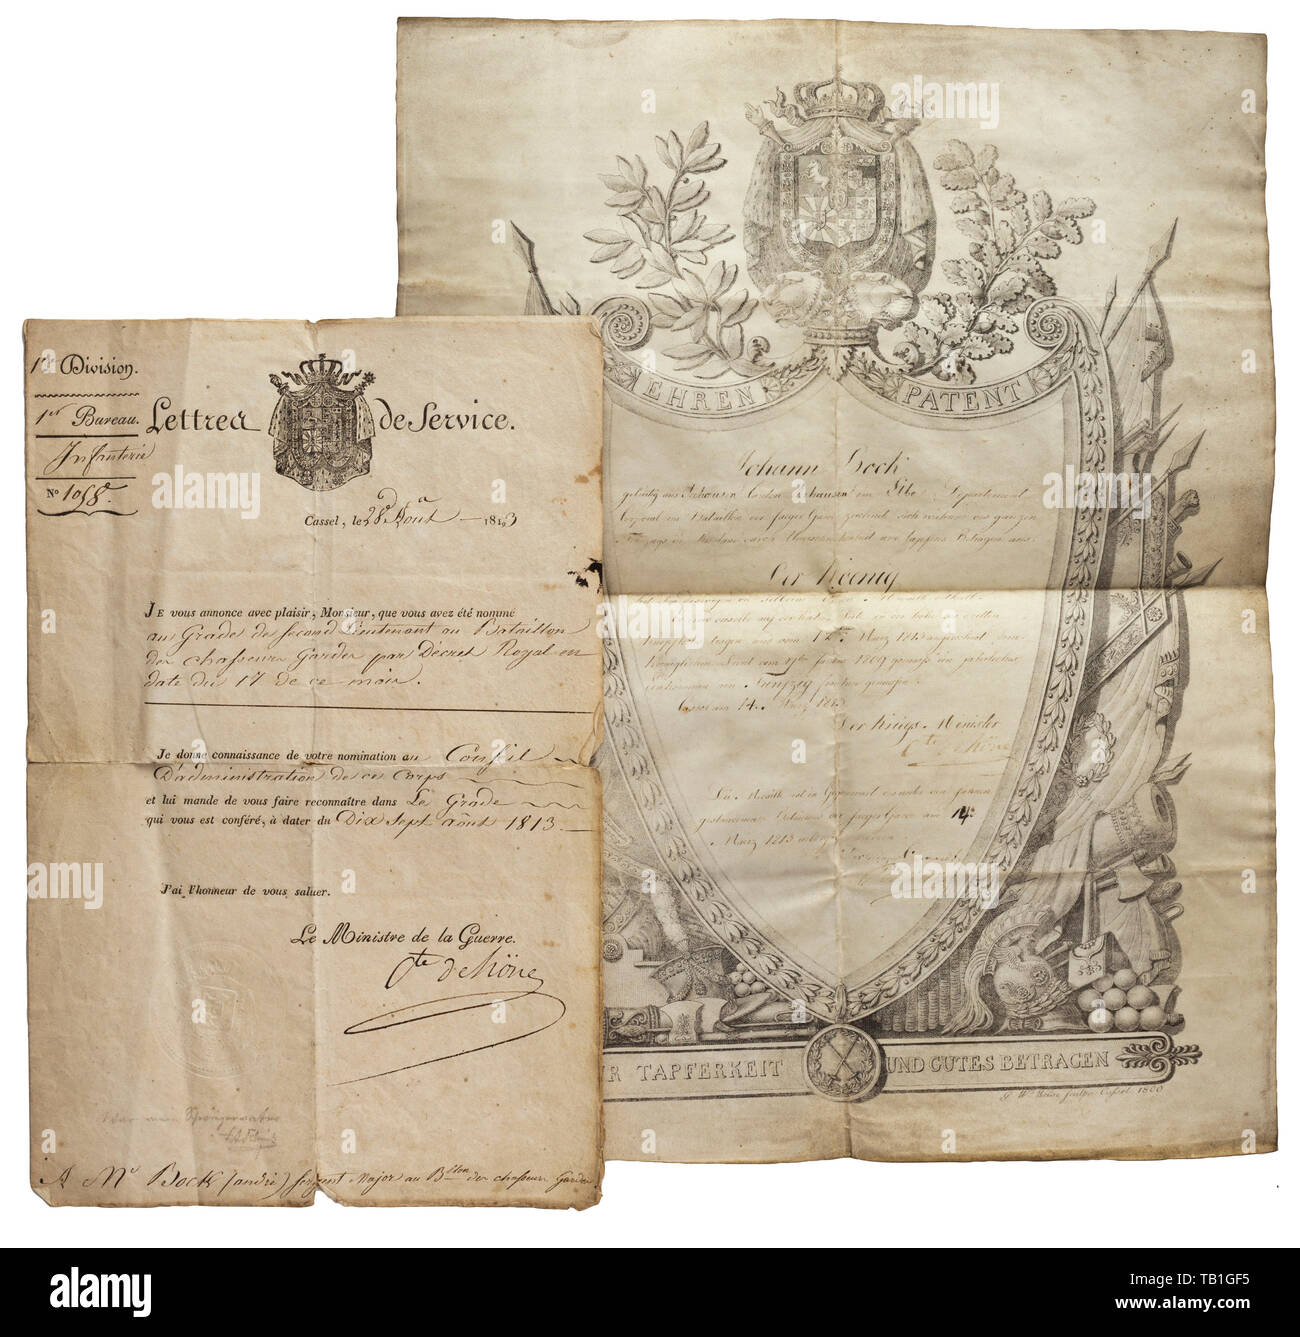 Honorary certificate for valour awarded to Corporal Johann Bock 1813, Large certificate of parchment, decorated with trophies of war and the coat of arms of the Kingdom of Westphalia. At the lower edge a depiction of the medal of valour on the bandeau (tr.) 'For valour and good conduct' and the artist's signature 'G.W. Weisehauß : Caßel 1809.' The document was issued on 14 March 1813 to 'Corporal in the battalion of the Guard Jäger Johann Bock from Seehausen, Canton Seehausen in the Elbe Department' for his excellent, brave conduct 'during the en, Additional-Rights-Clearance-Info-Not-Available - Stock Image